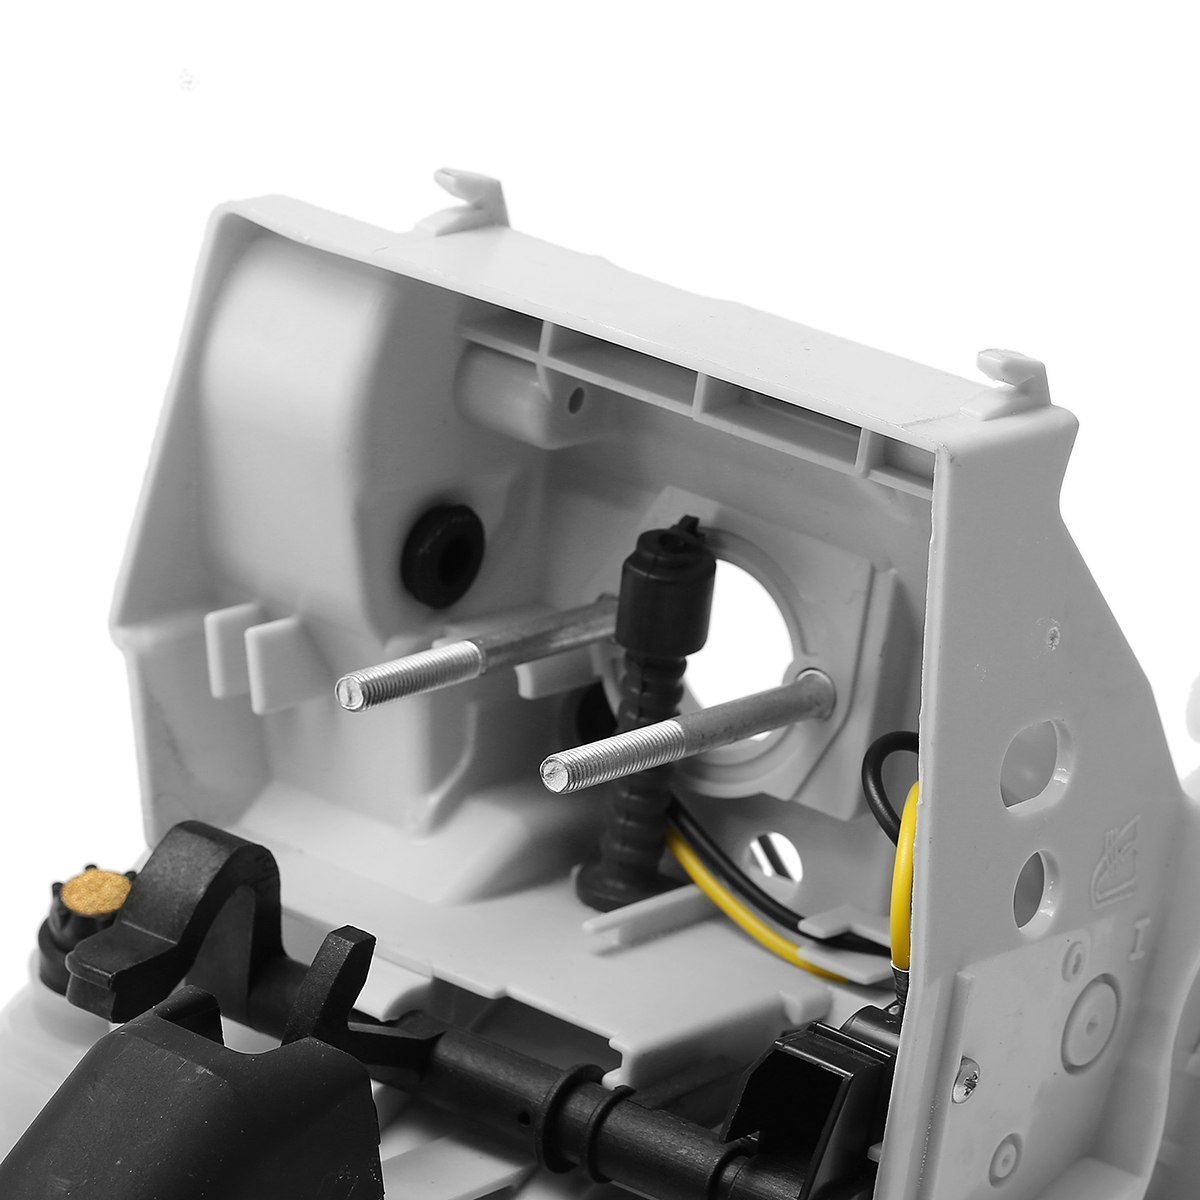 Gas Fuel Tank Housing Rear Handle Assy For STIHL MS461 MS460 046 Chainsaw